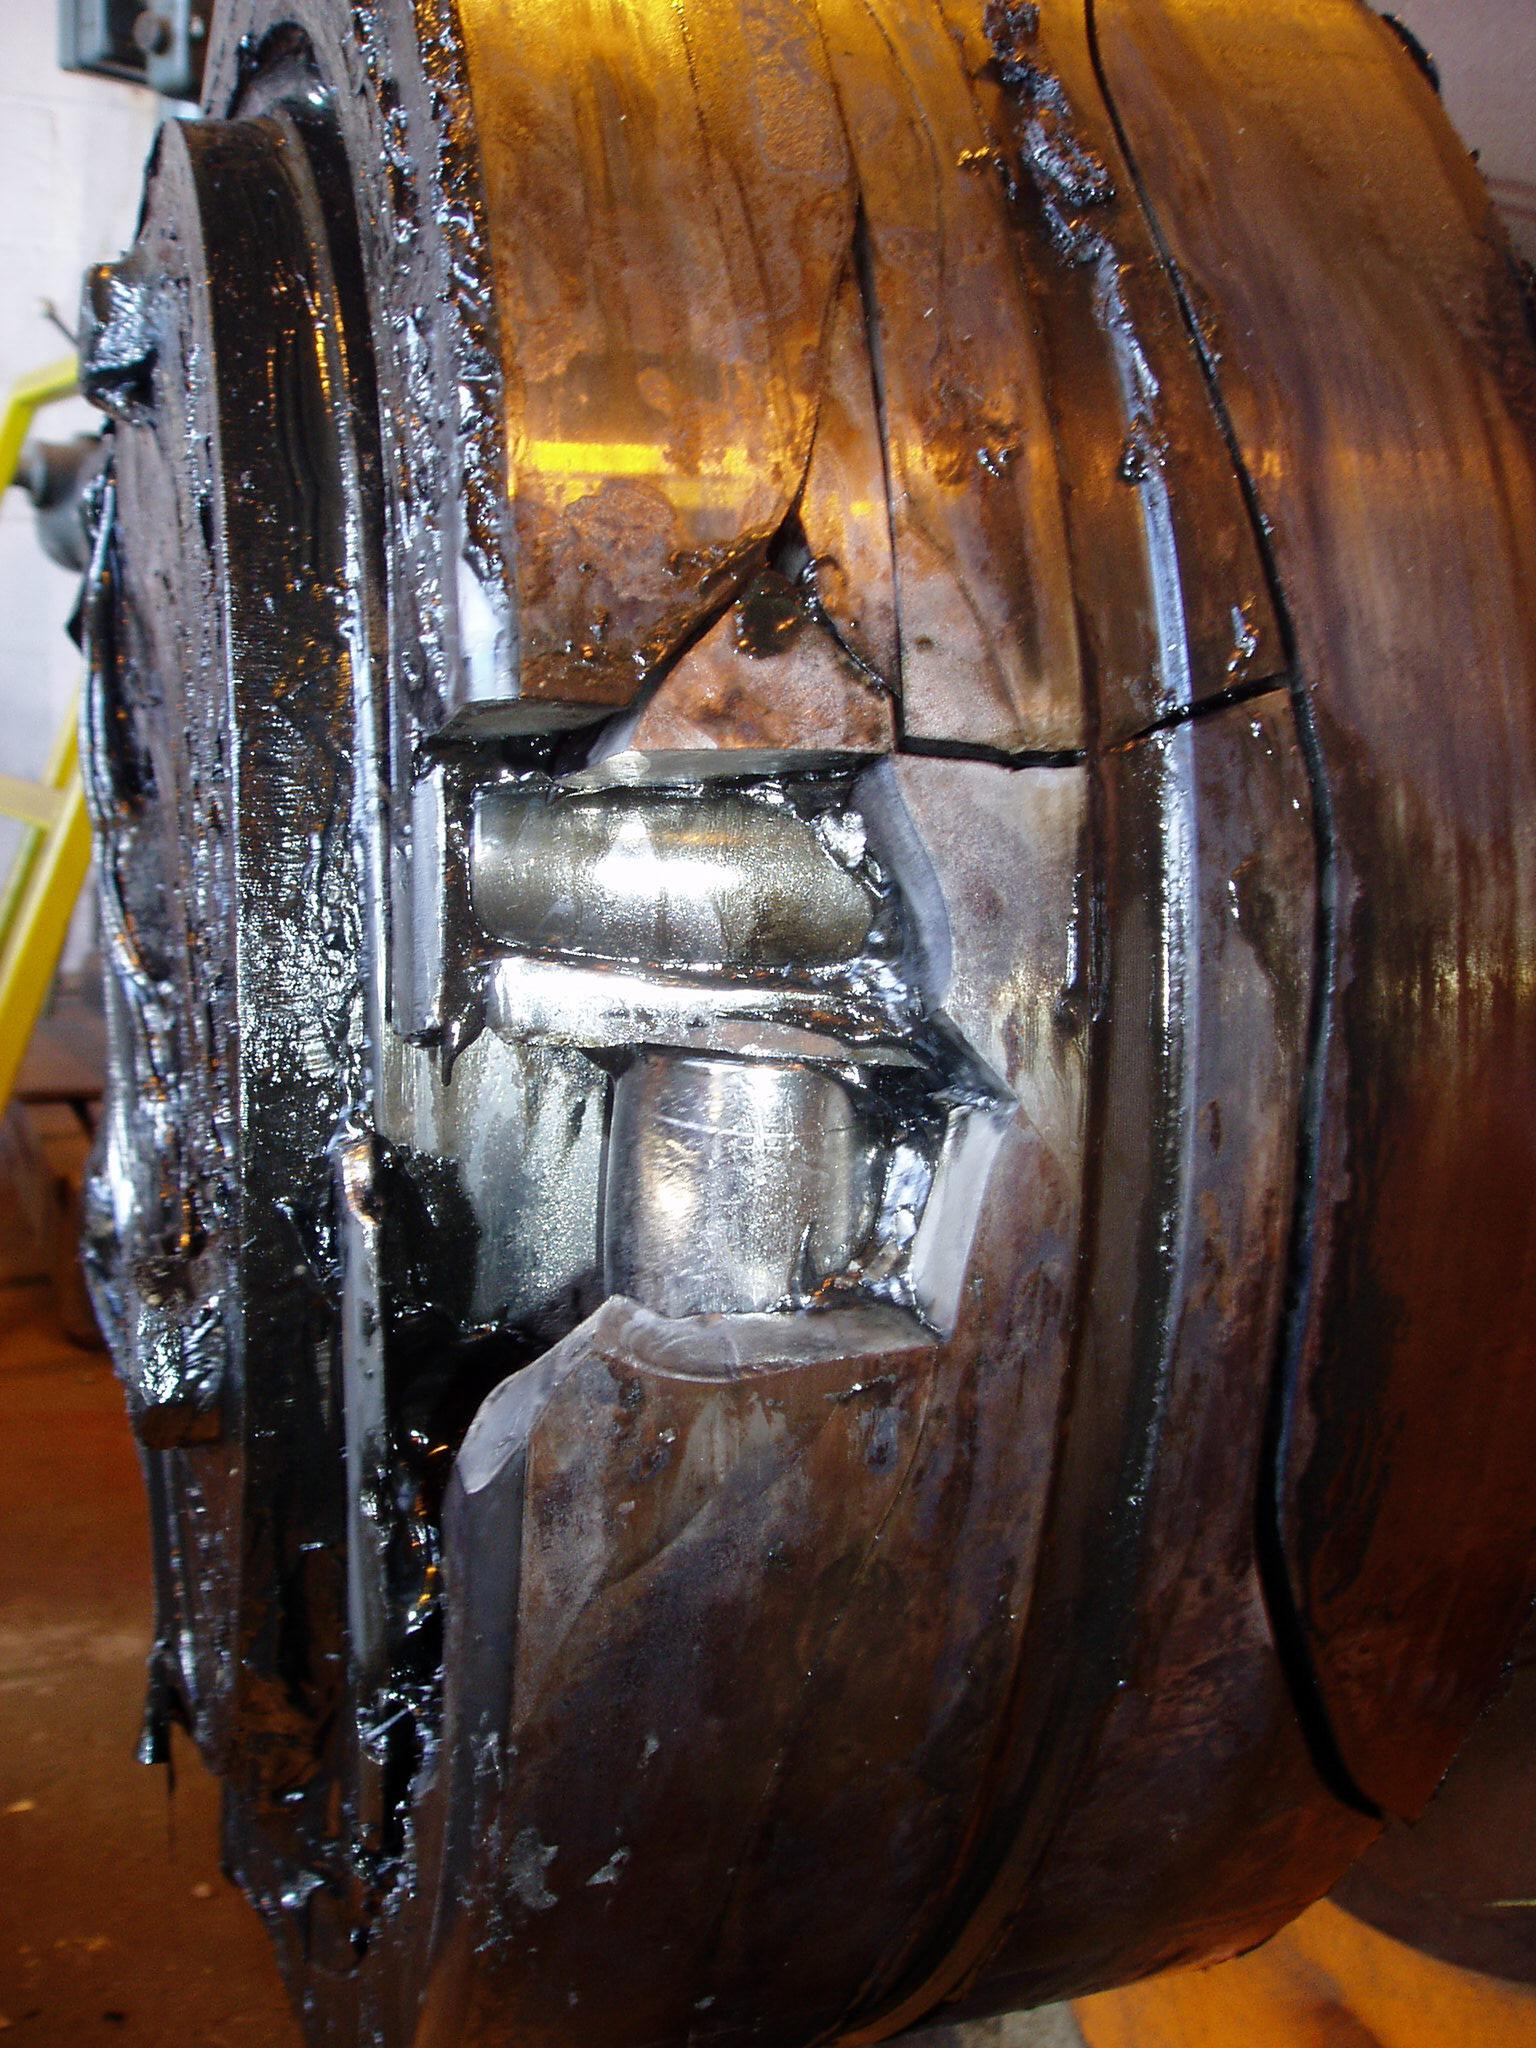 Case Study: Slow-Speed Bearing on Oven Motor - Failure Detection using Ultrasound